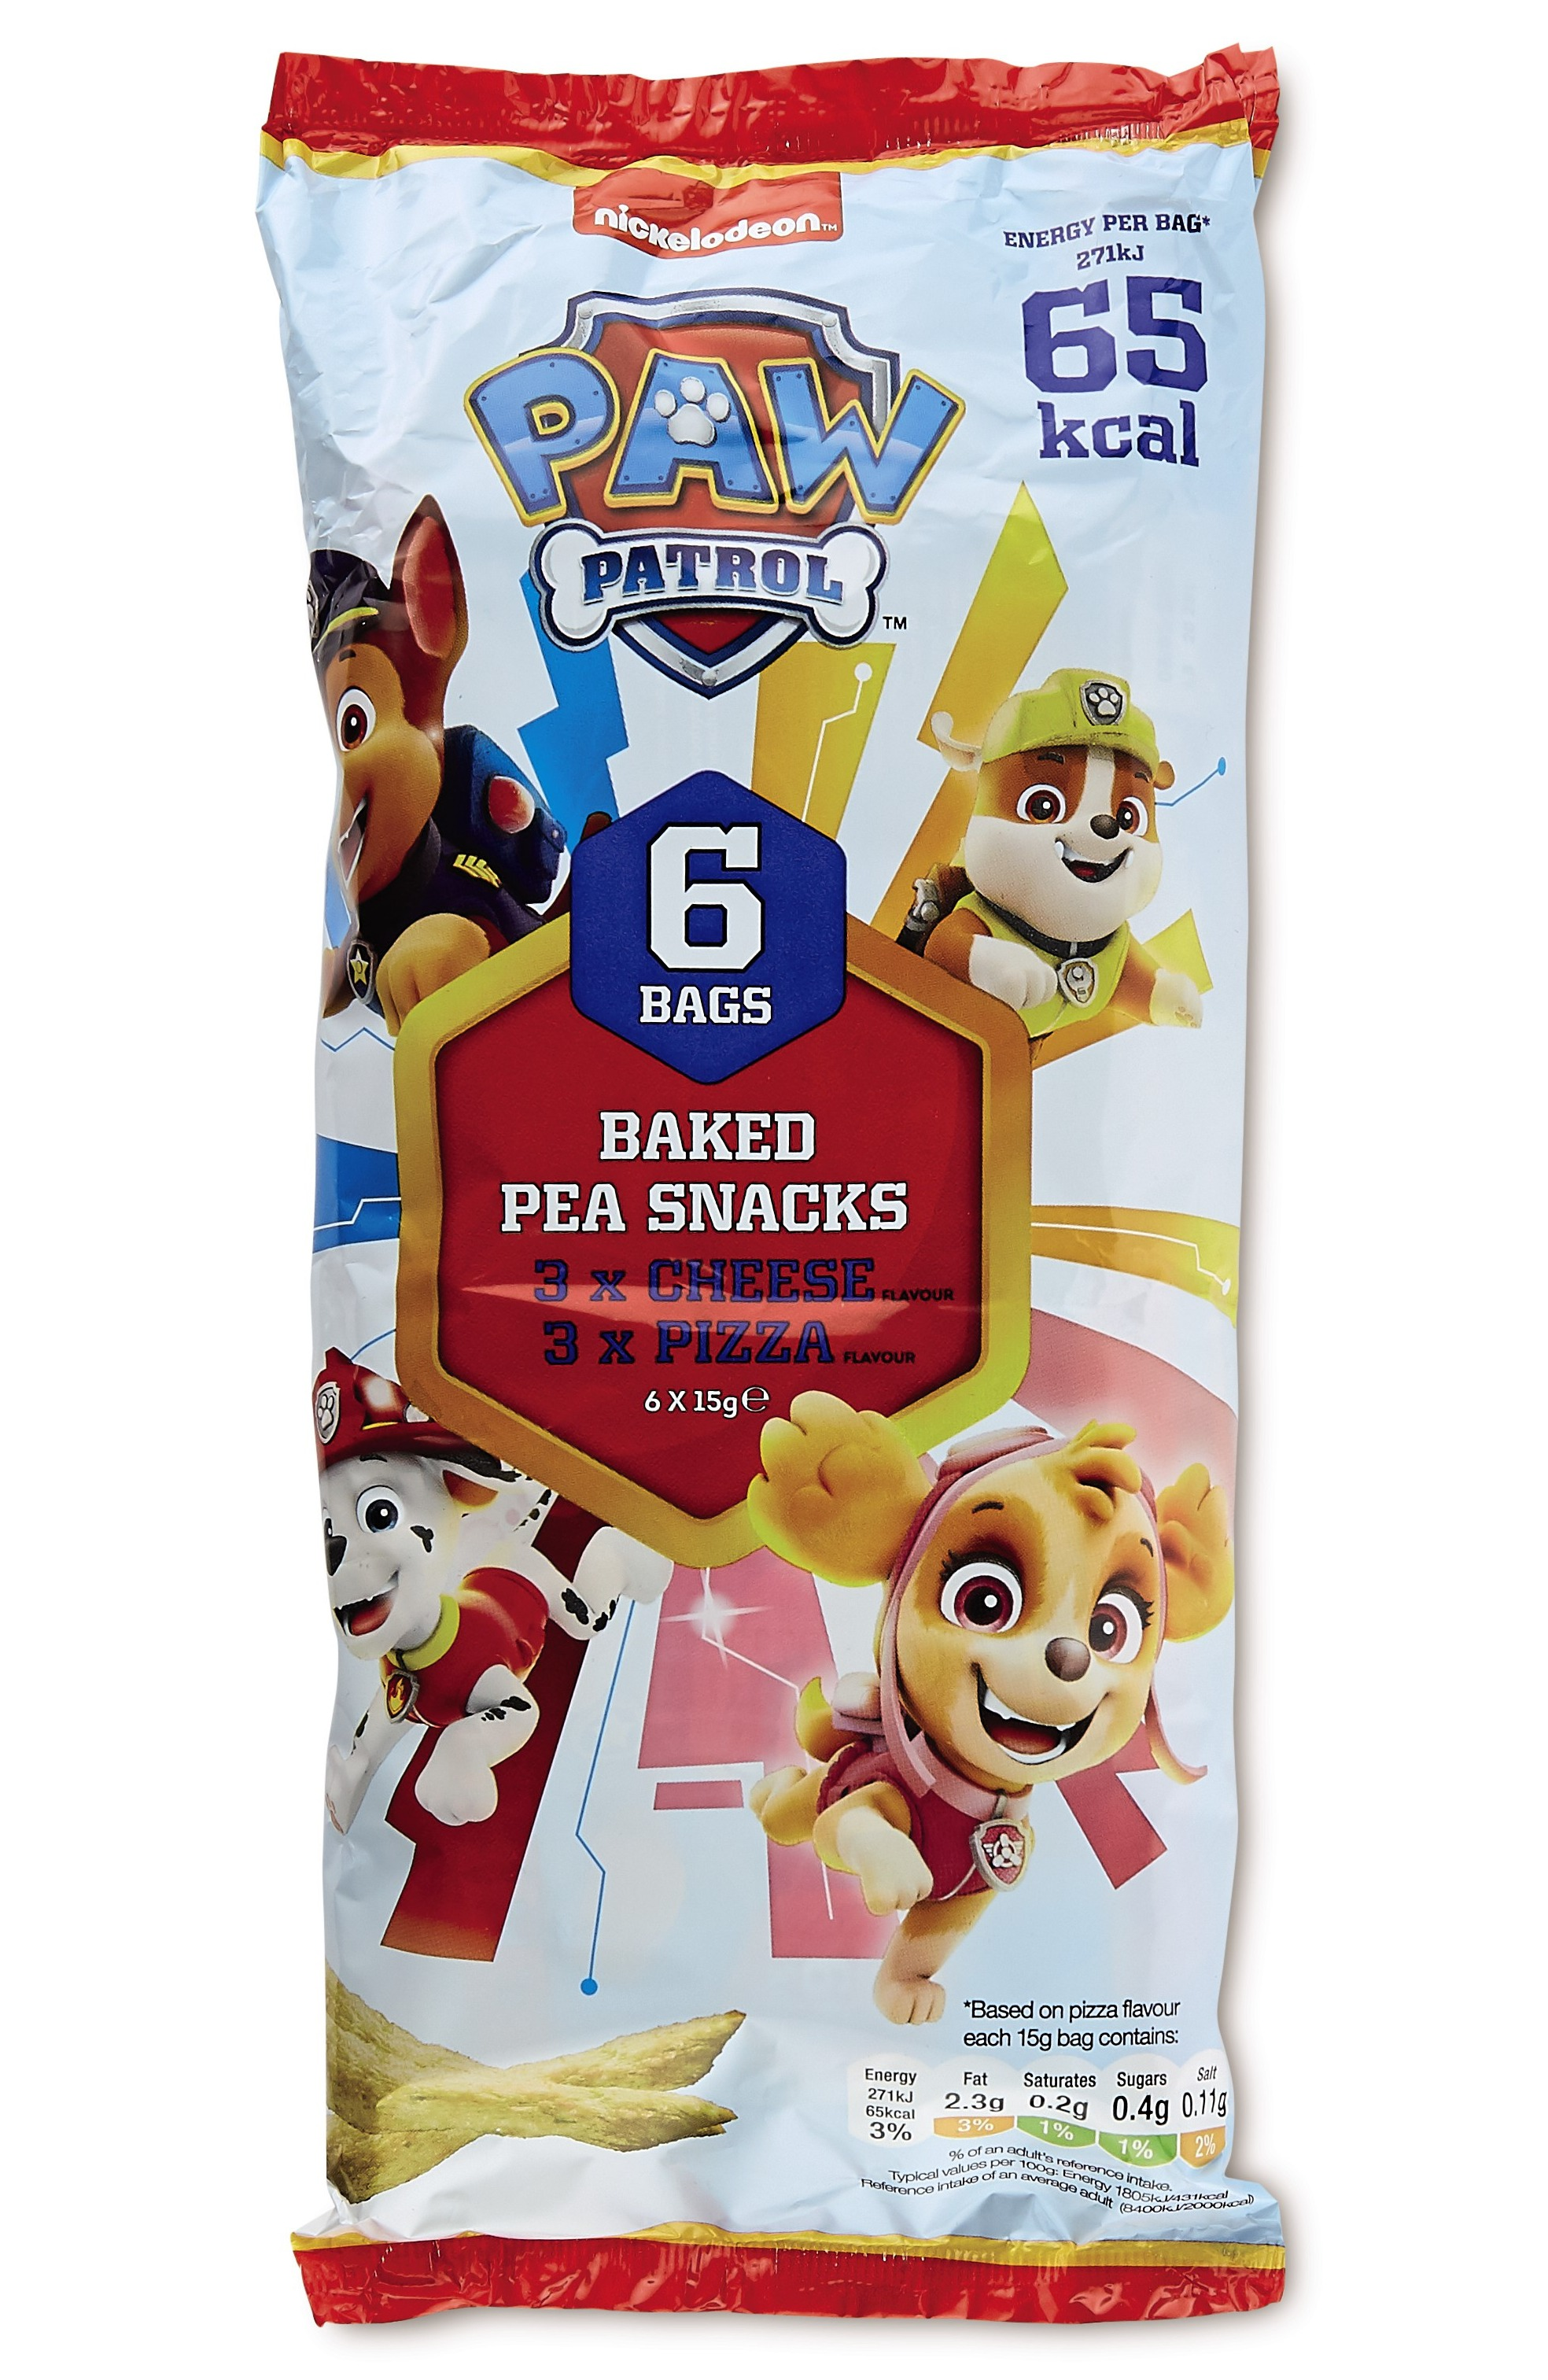 Paw Patrol is popular with little ones